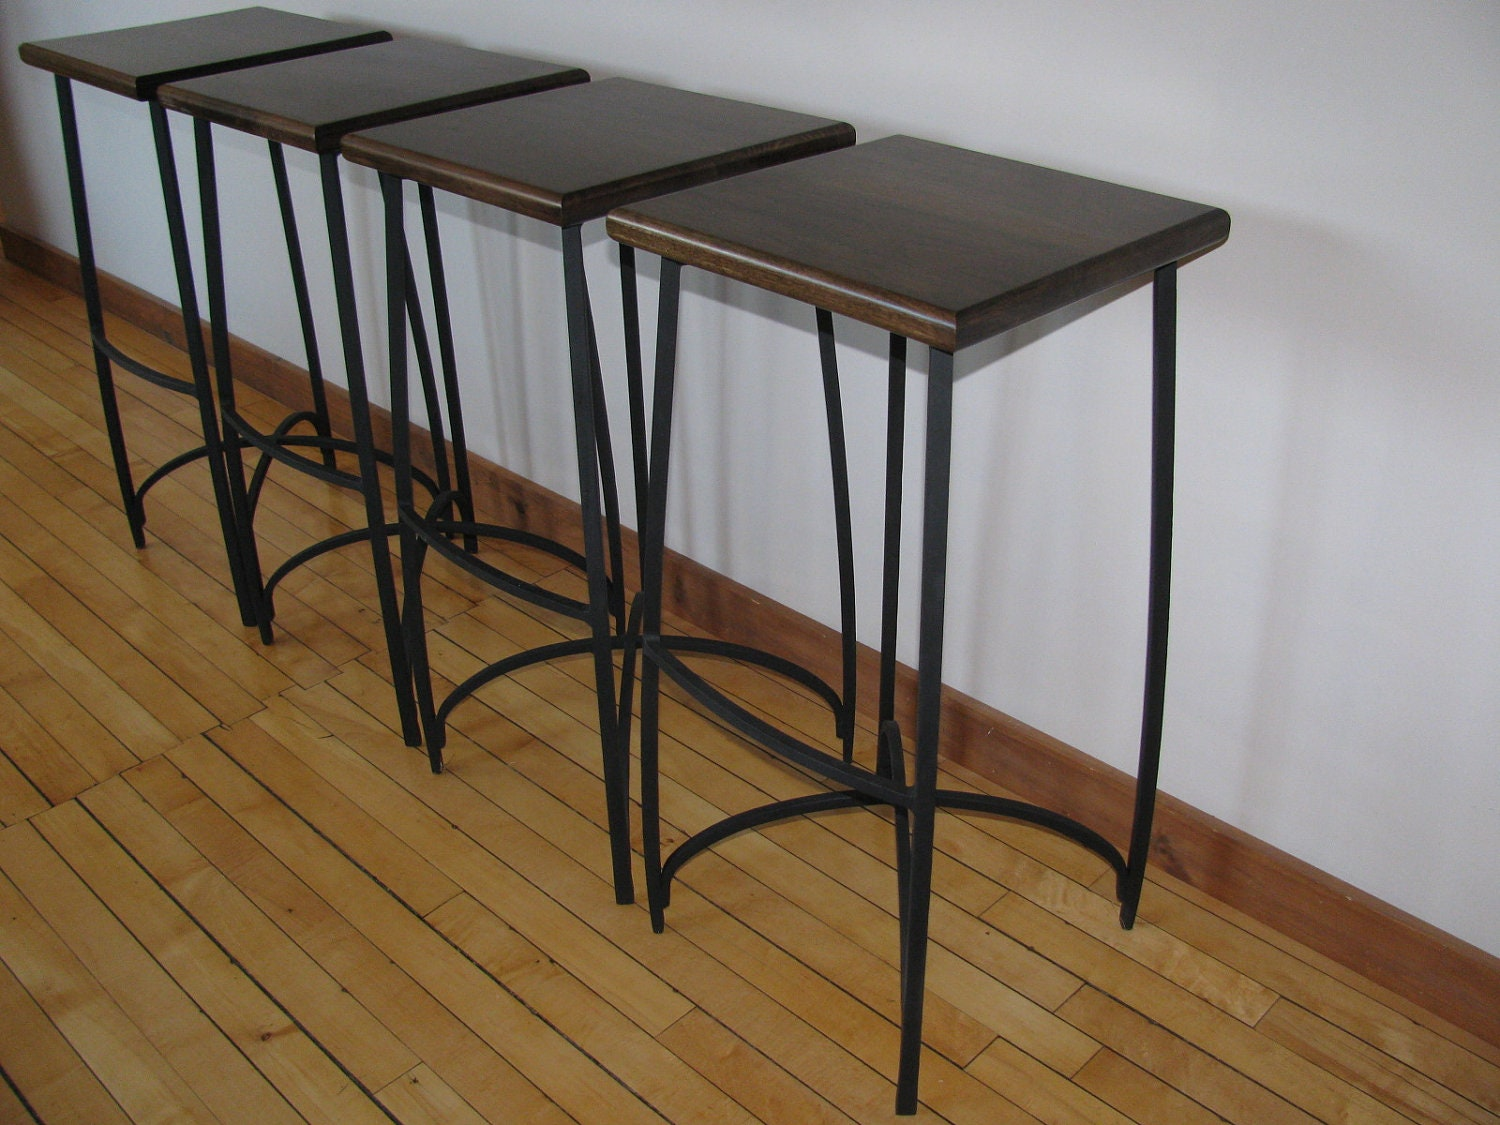 can iron cause black stools